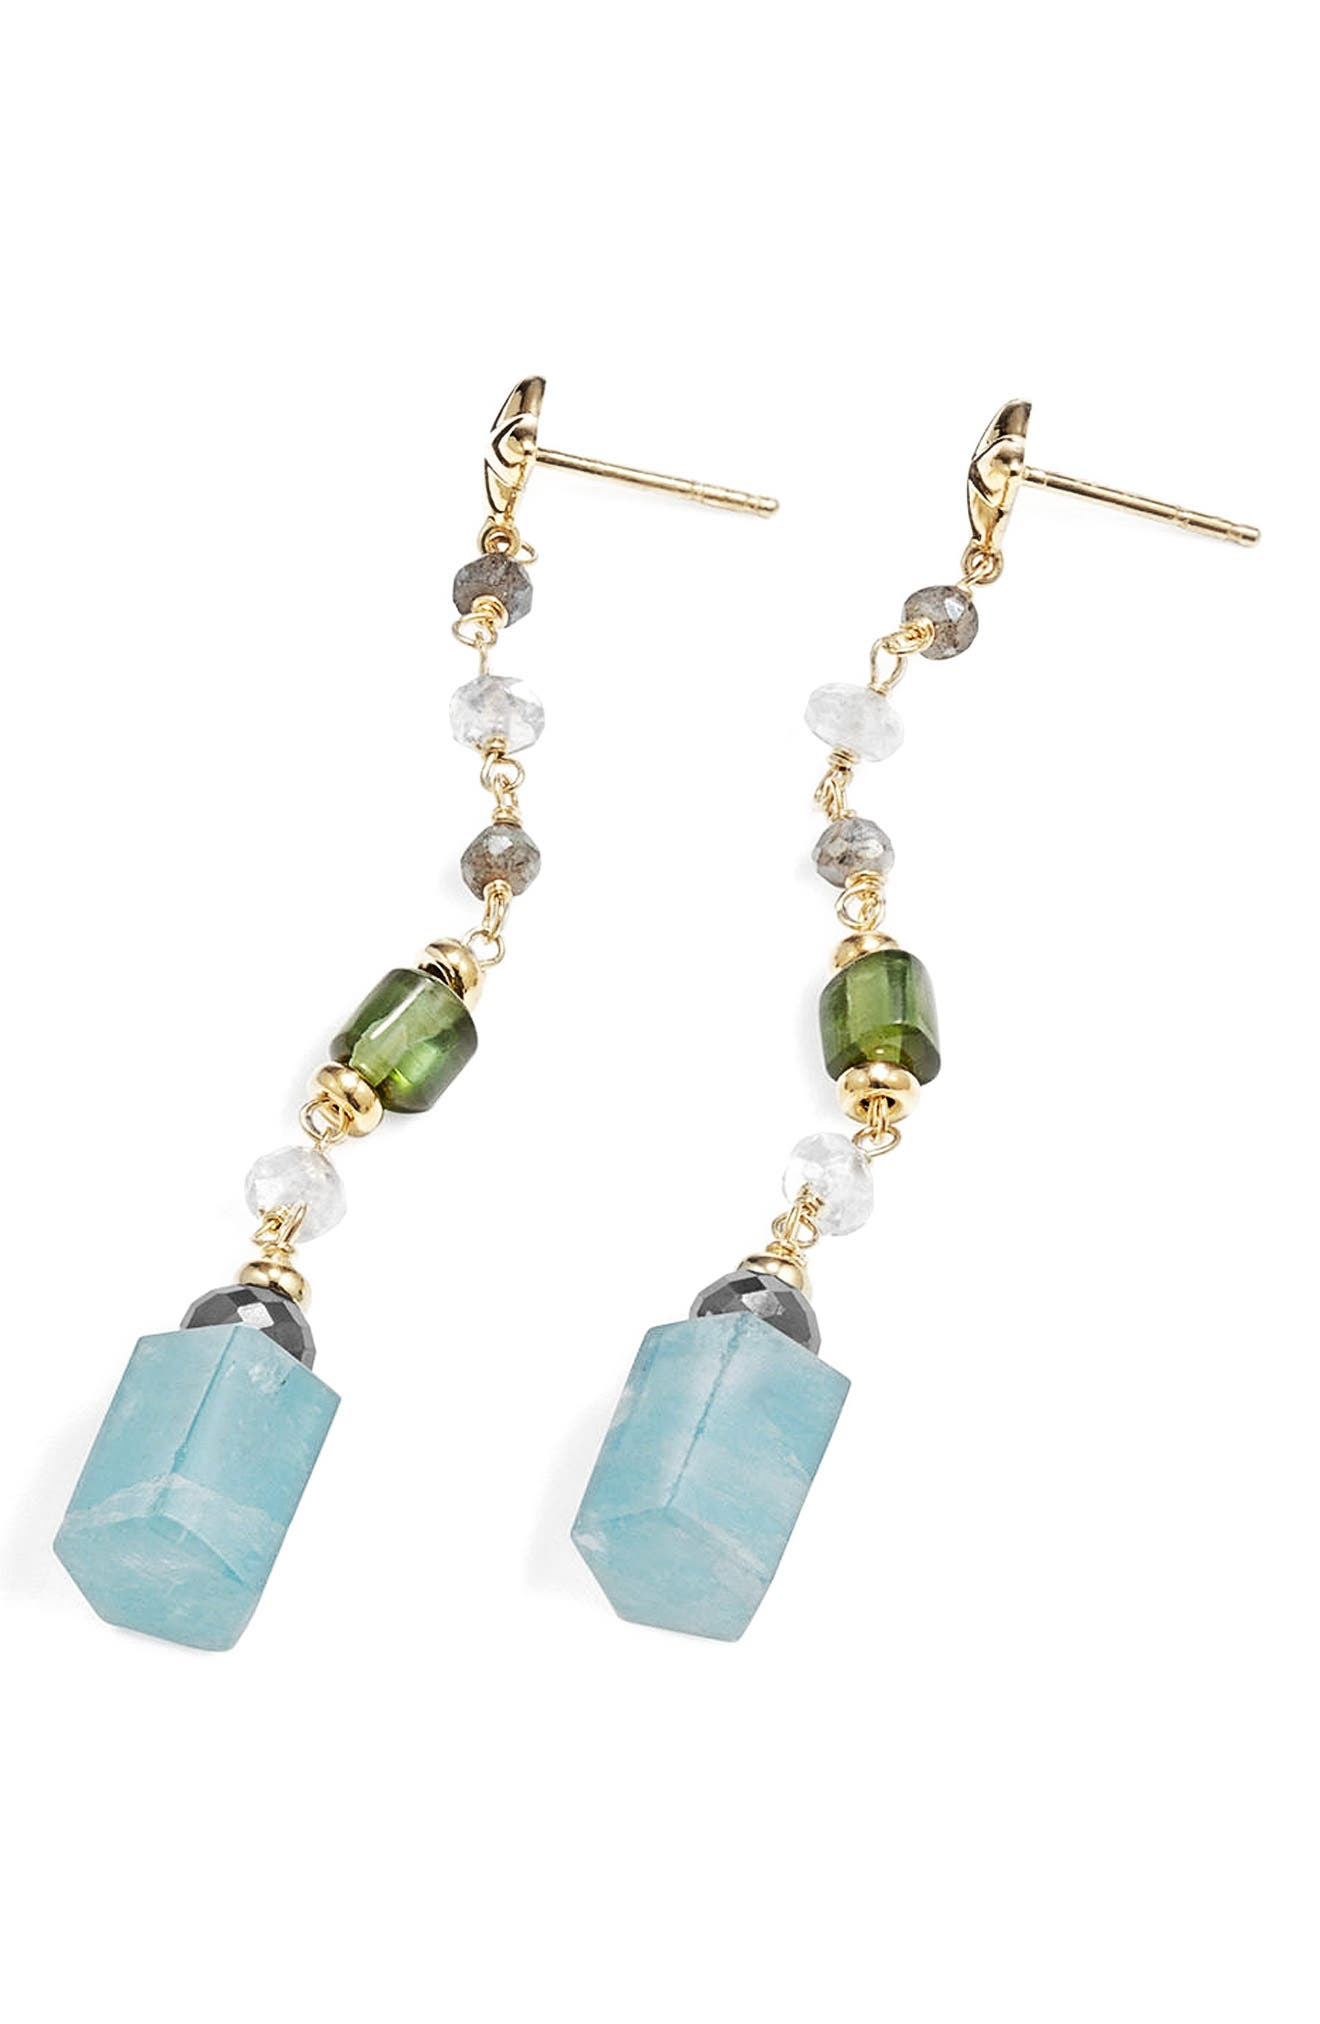 Bead & Chain Earrings with Semiprecious Stones,                             Alternate thumbnail 2, color,                             440